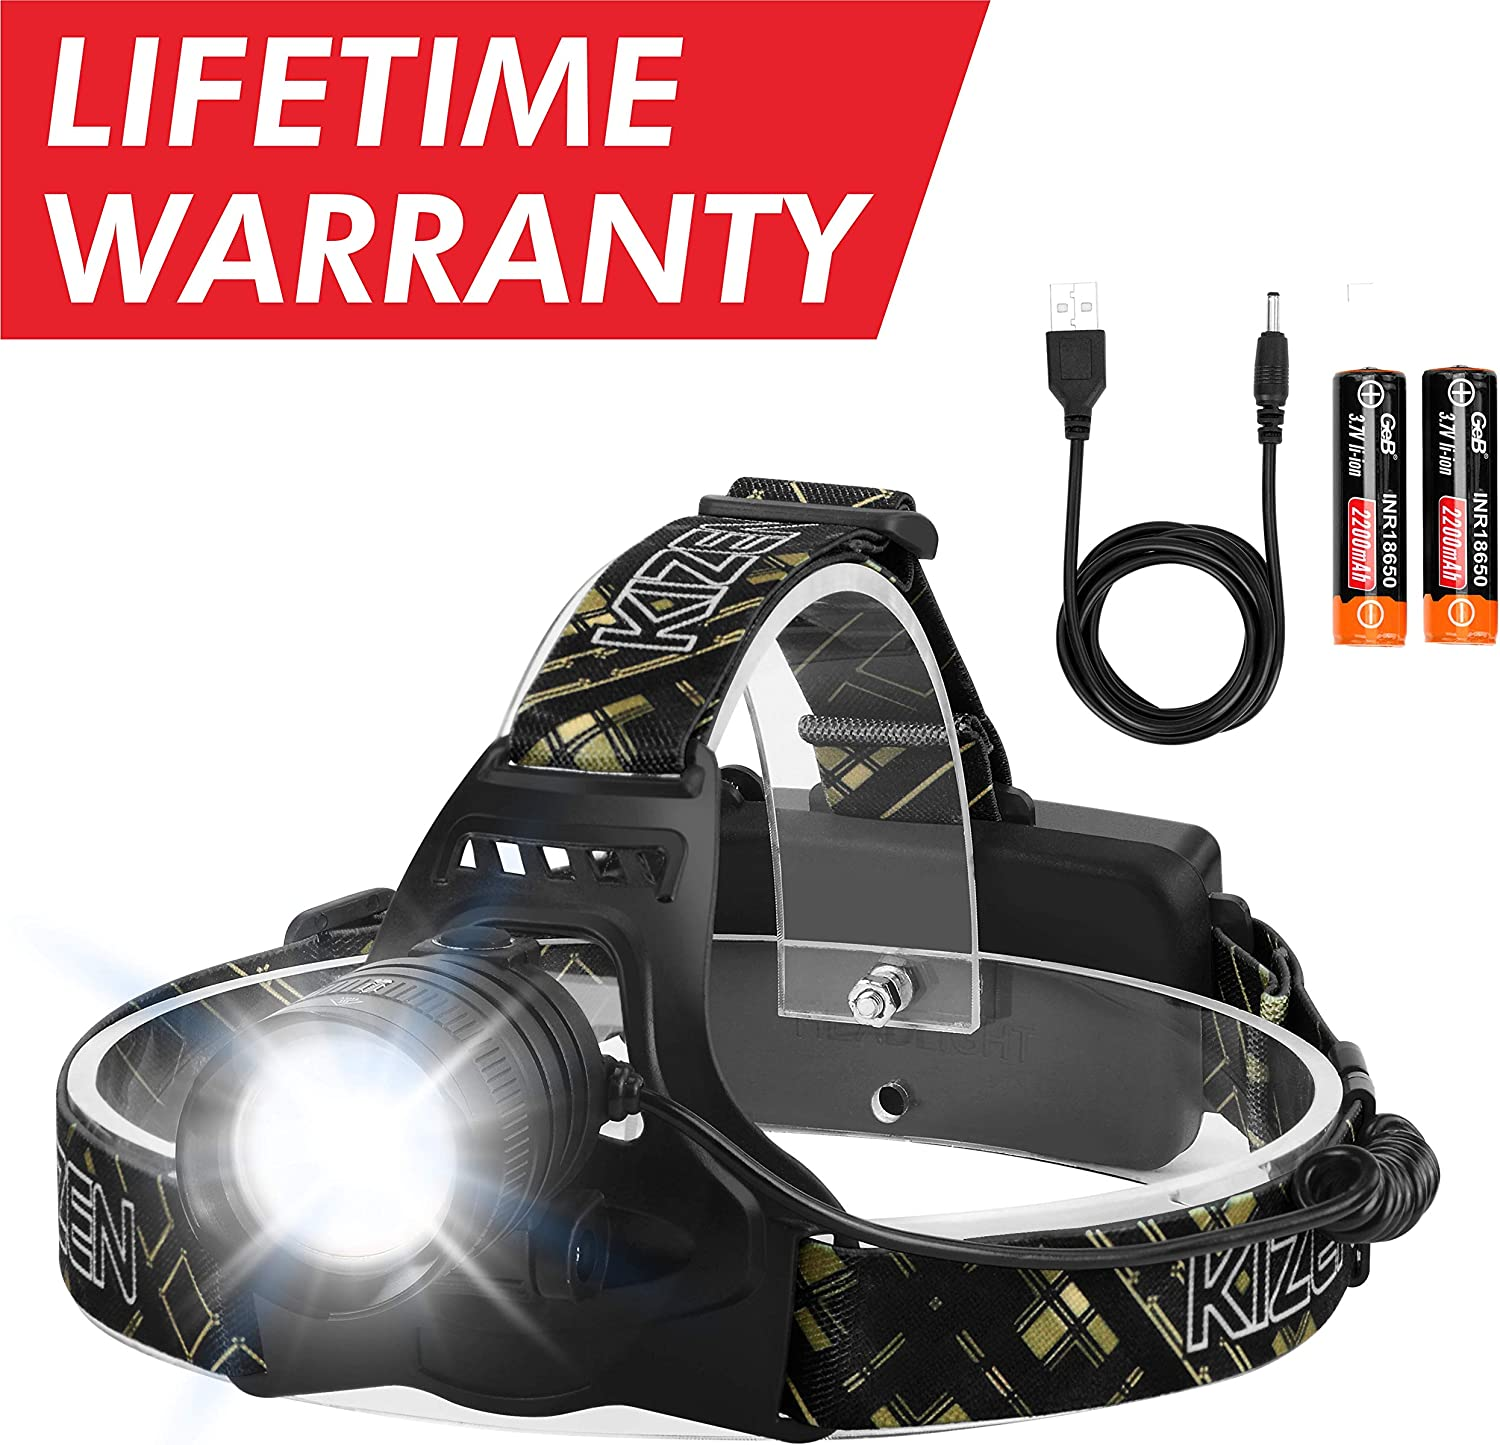 Kizen XHP-50 Headlamp. Next Generation LED Waterproof Headlight. Zoomable Work Light, 18650 USB Rechargeable Head Lights for Camping,Hiking, Outdoors